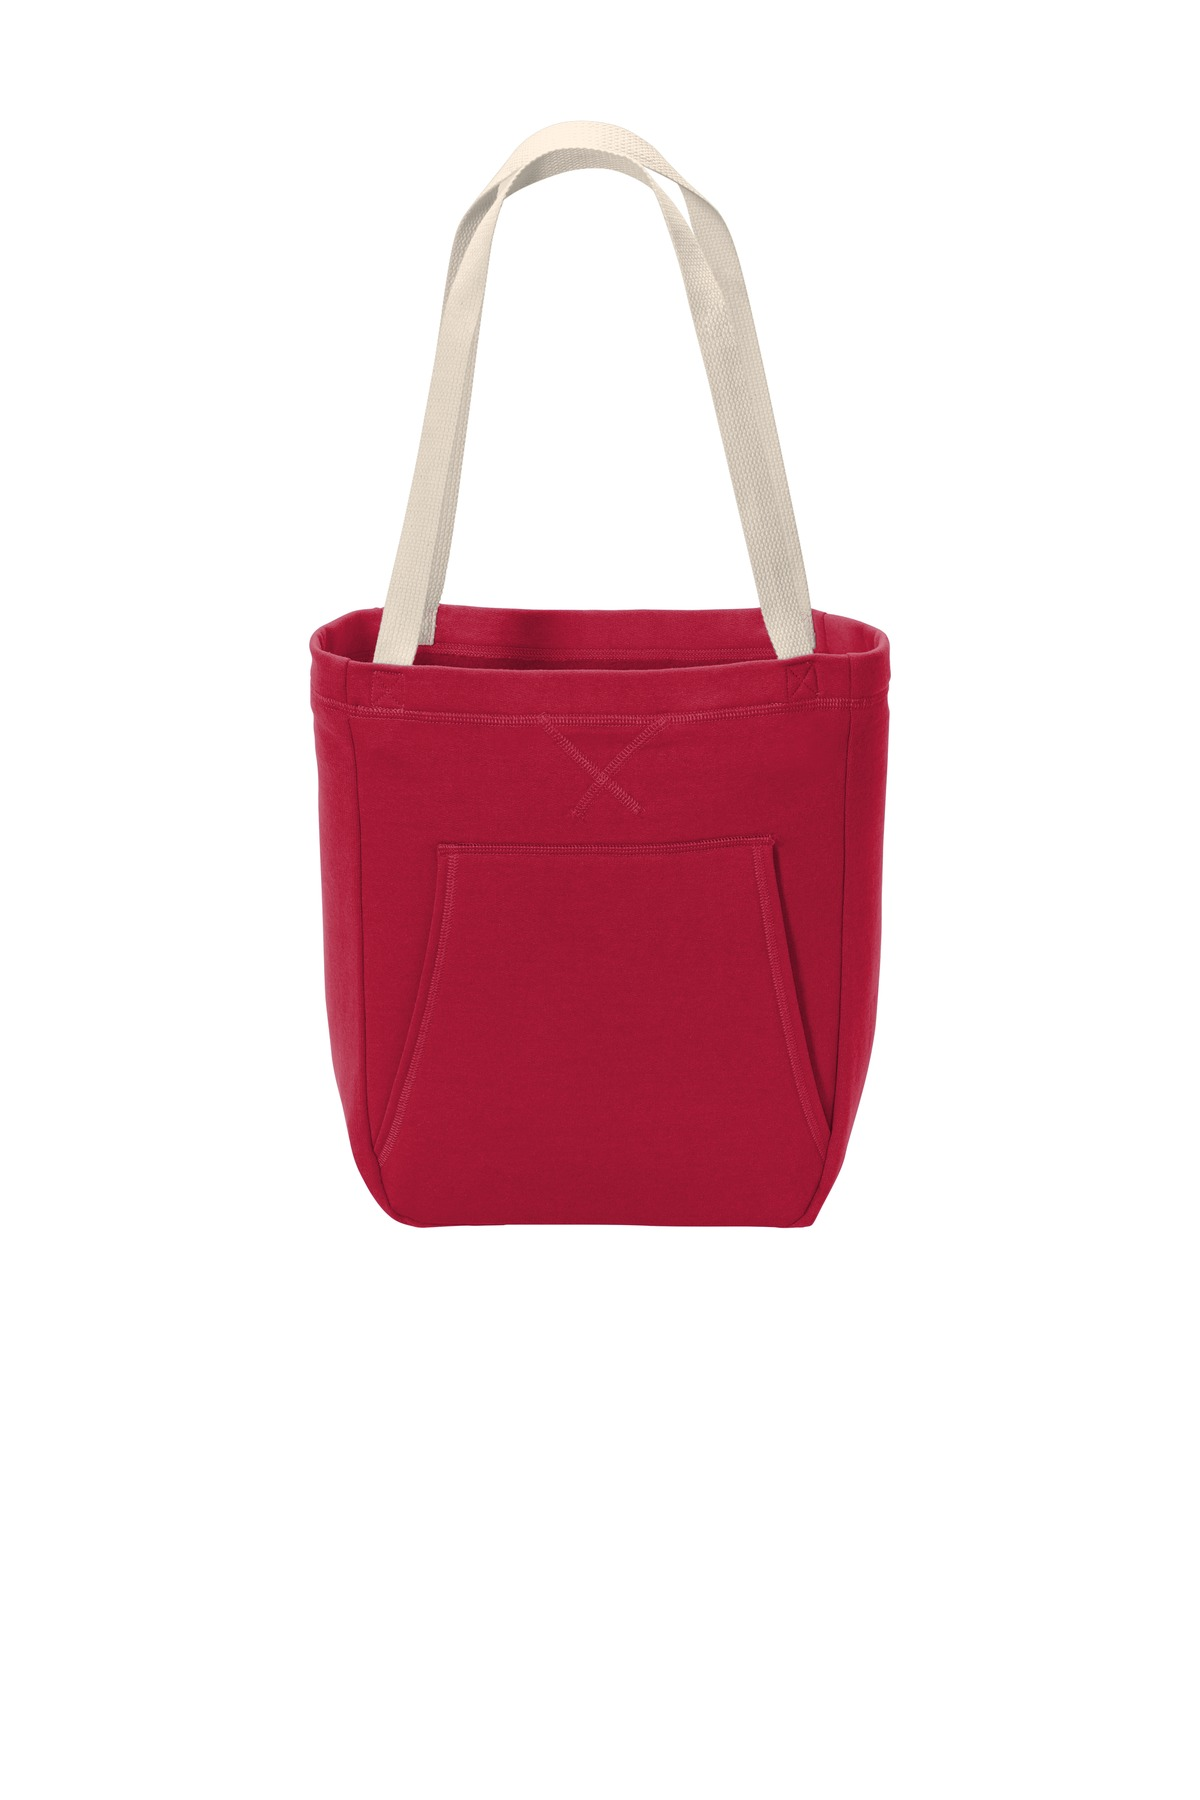 Port & Company  ®  Core Fleece Sweatshirt Tote BG415 - Red